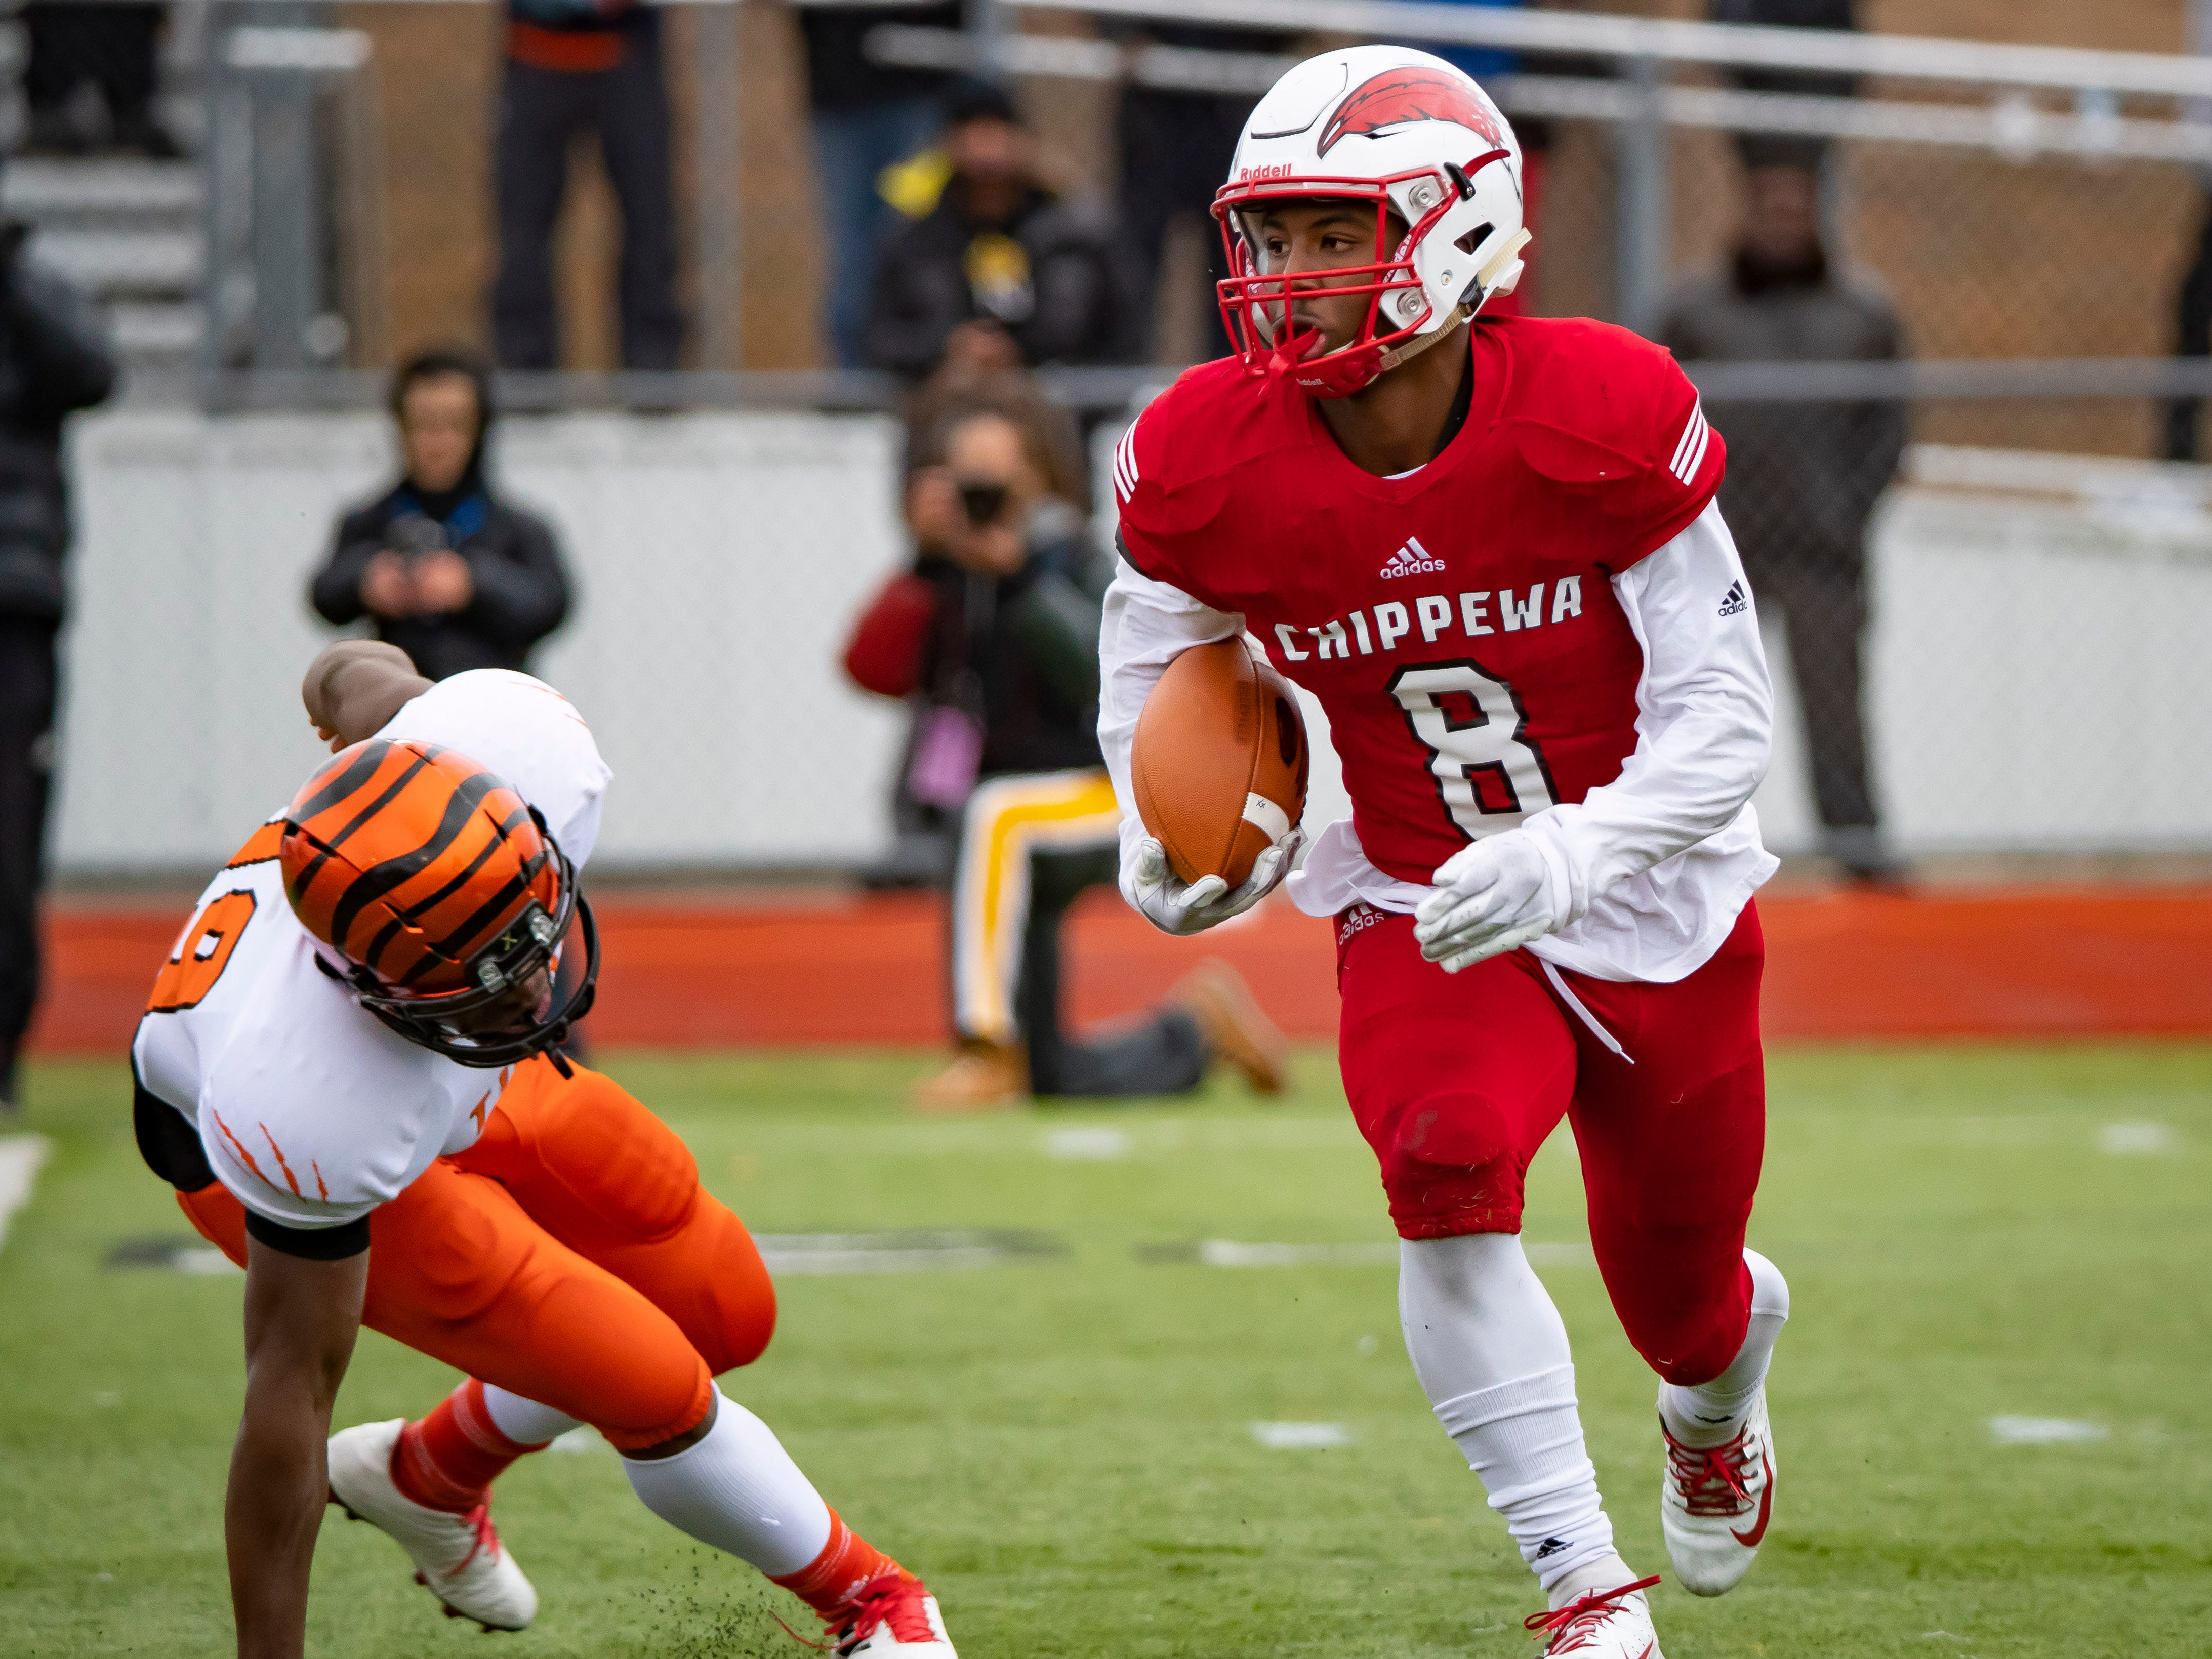 """11. David Ellis, Clinton Township Chippewa Valley (Indiana) — WR/CB/6-0/190: Ellis — a Dream Team member — was the premier three-way player in the state, showing his ability to play at a high level on offense, defense and special teams, scoring on a 99-yard touchdown run and an 80-yard touchdown pass in a regional final win over Dearborn Fordson, then scoring on a 94-yard kickoff return in a Division 1 state championship game win over Clarkston at Ford Field. He had 39 receptions for 636 yards and more than 1,700 all-purpose yards and 20 touchdowns, five scores coming on special teams. He also got in on 45 tackles while breaking up five passes. """"He's a phenomenal athlete and a tough kid,"""" coach Scott Merchant said."""